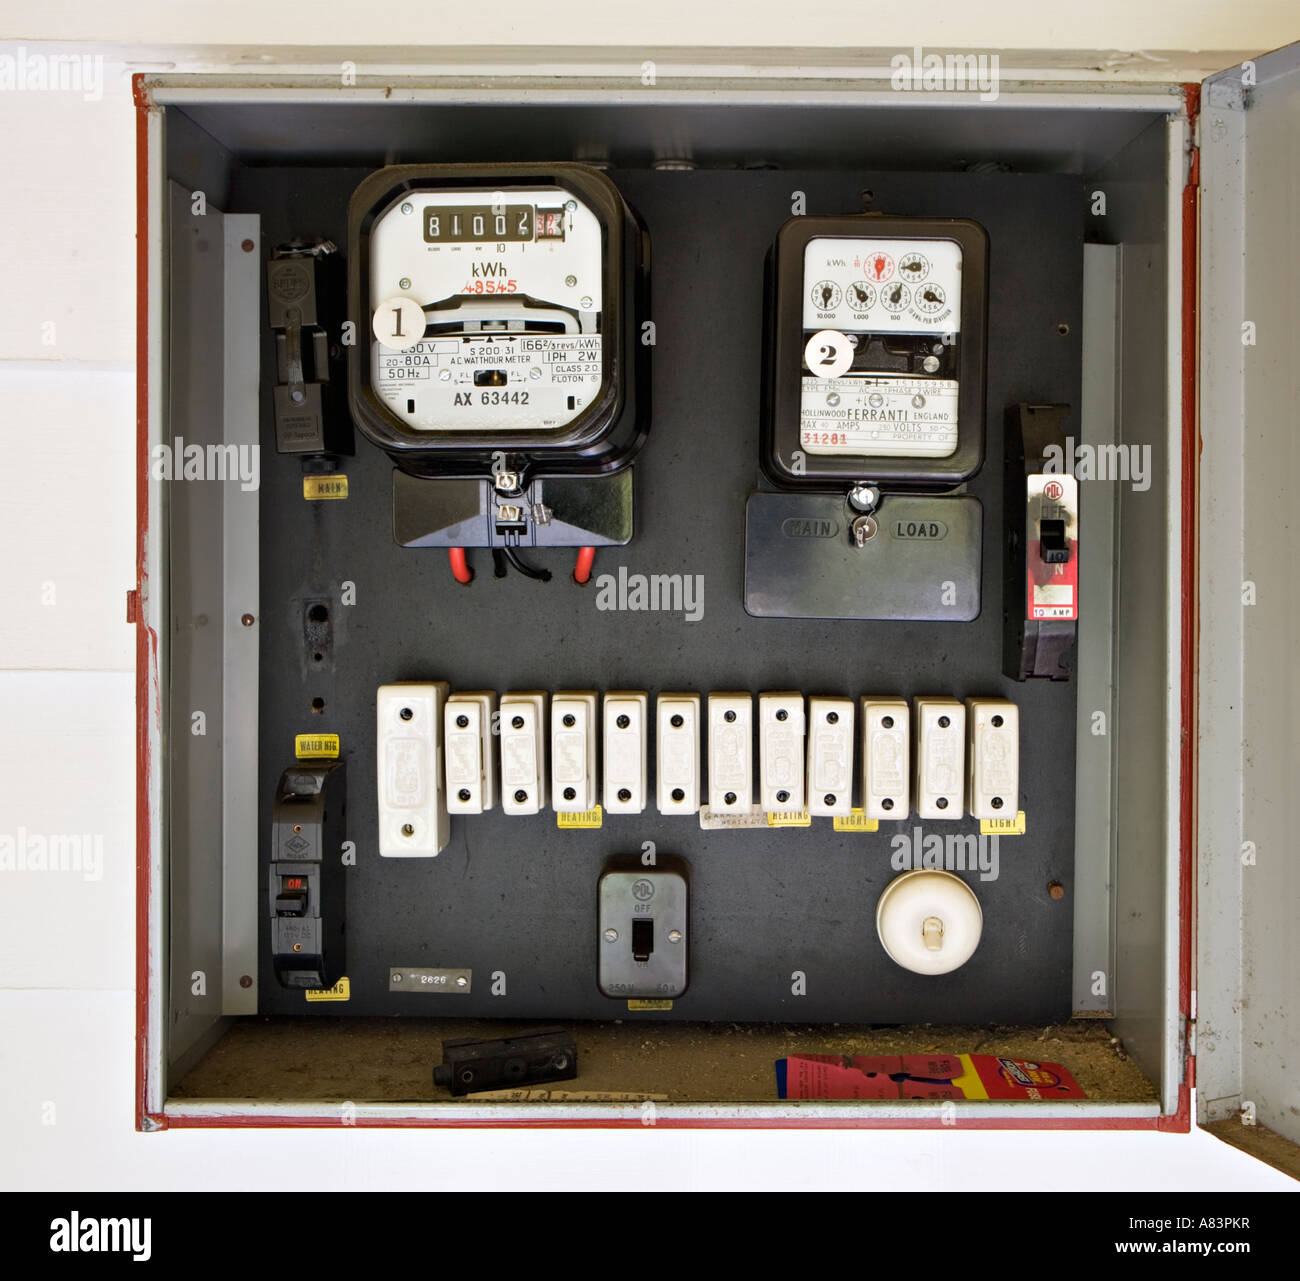 electricity meter in box with old style fuses circa 1962 in new zealand A83PKR electricity meter in box with old style fuses, circa 1962, in new how to box in a fuse box at panicattacktreatment.co